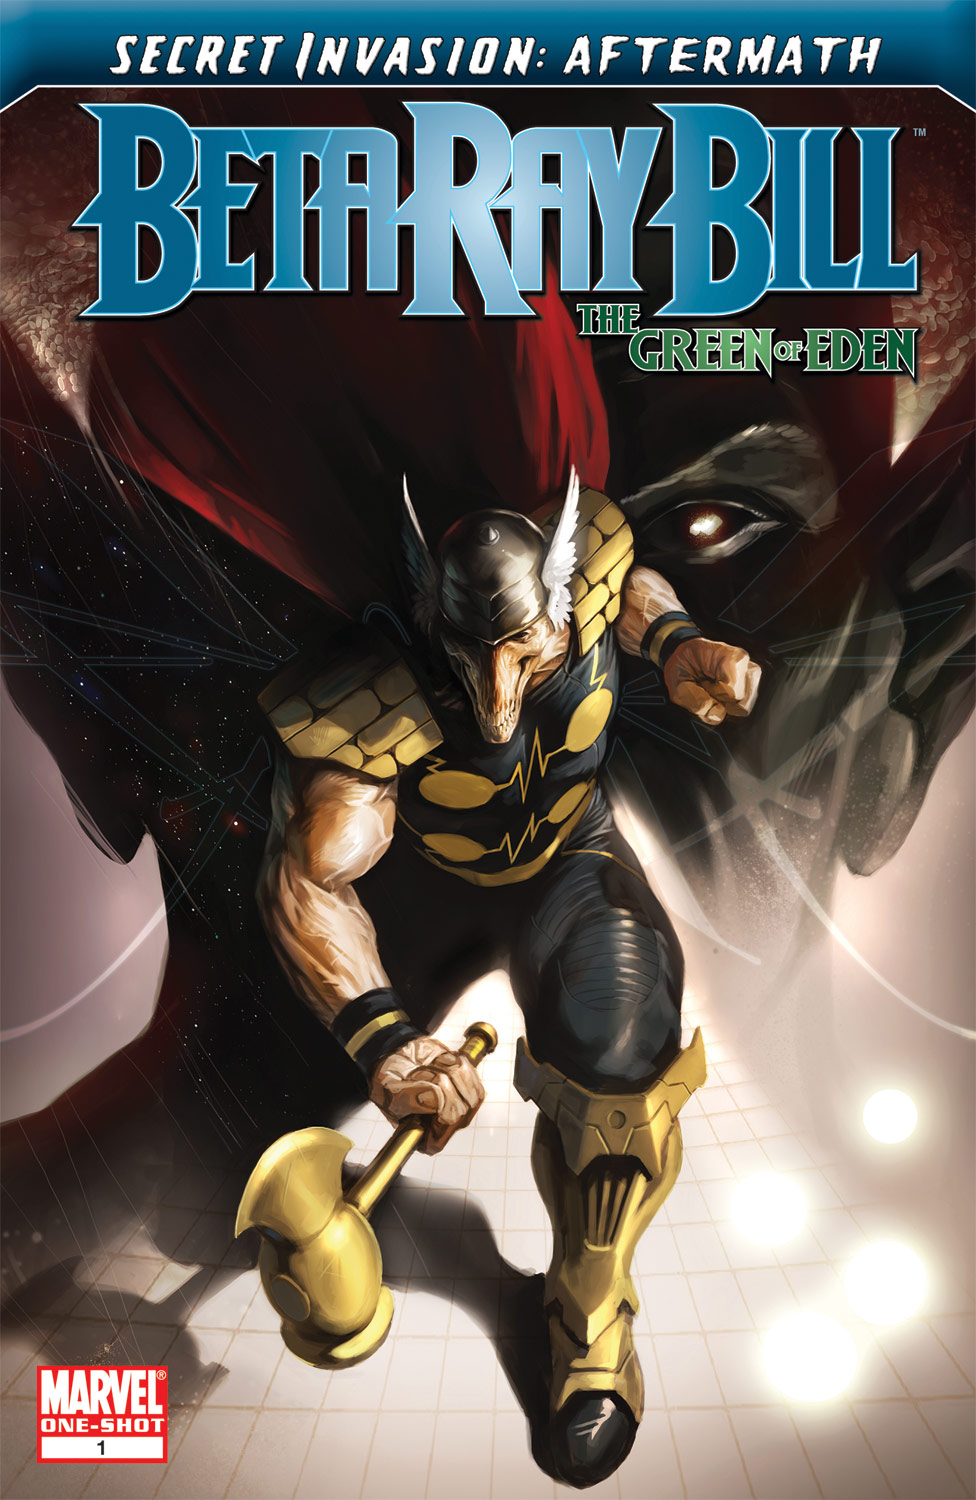 Read online Secret Invasion Aftermath: Beta Ray Bill - The Green of Eden comic -  Issue # Full - 1